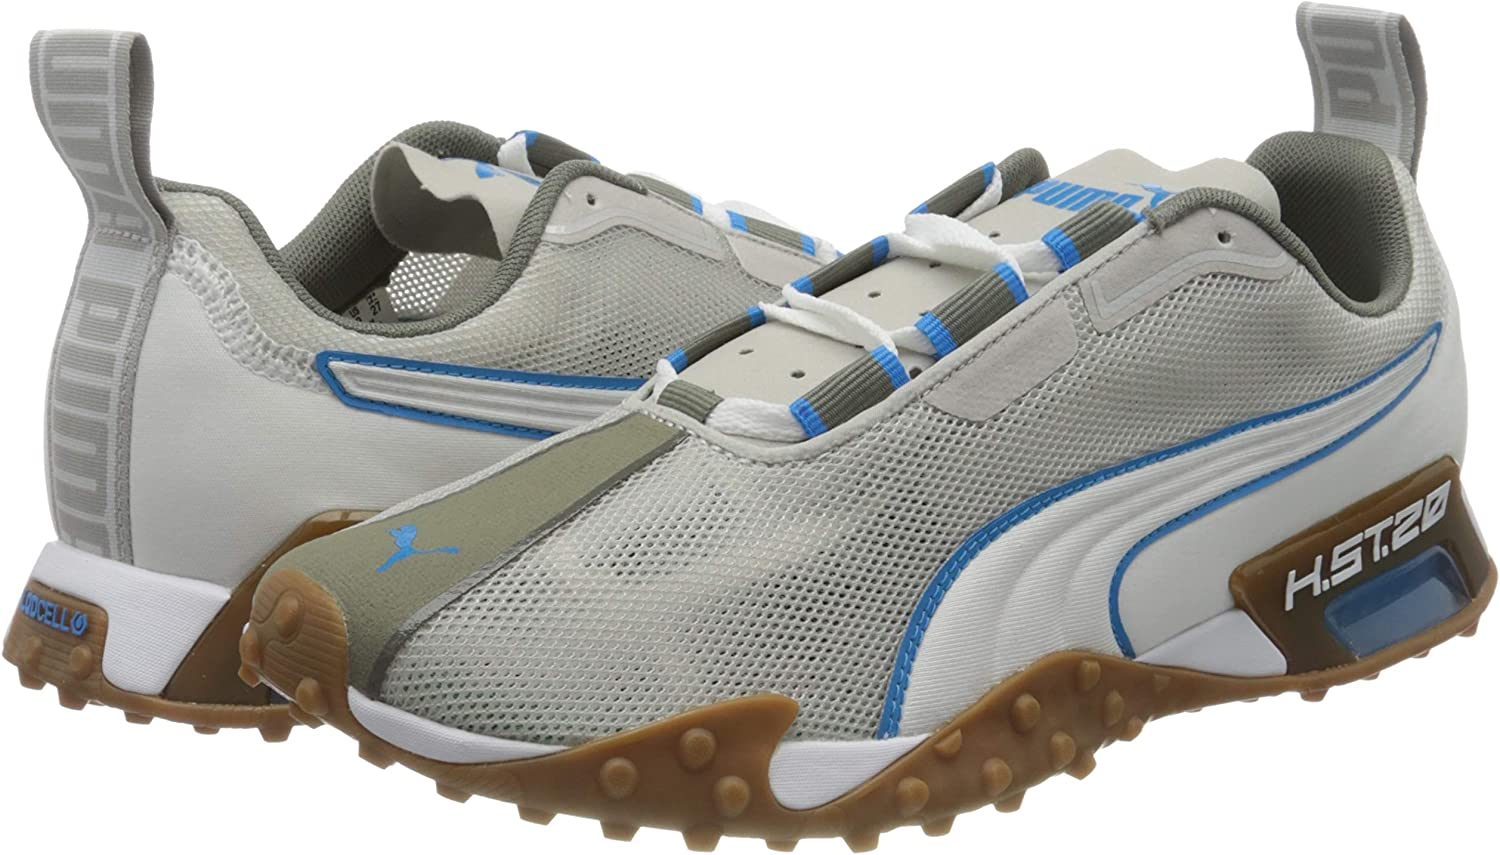 PUMA H.ST.20, Zapatillas de Running Unisex Adulto: Amazon.es: Zapatos y complementos